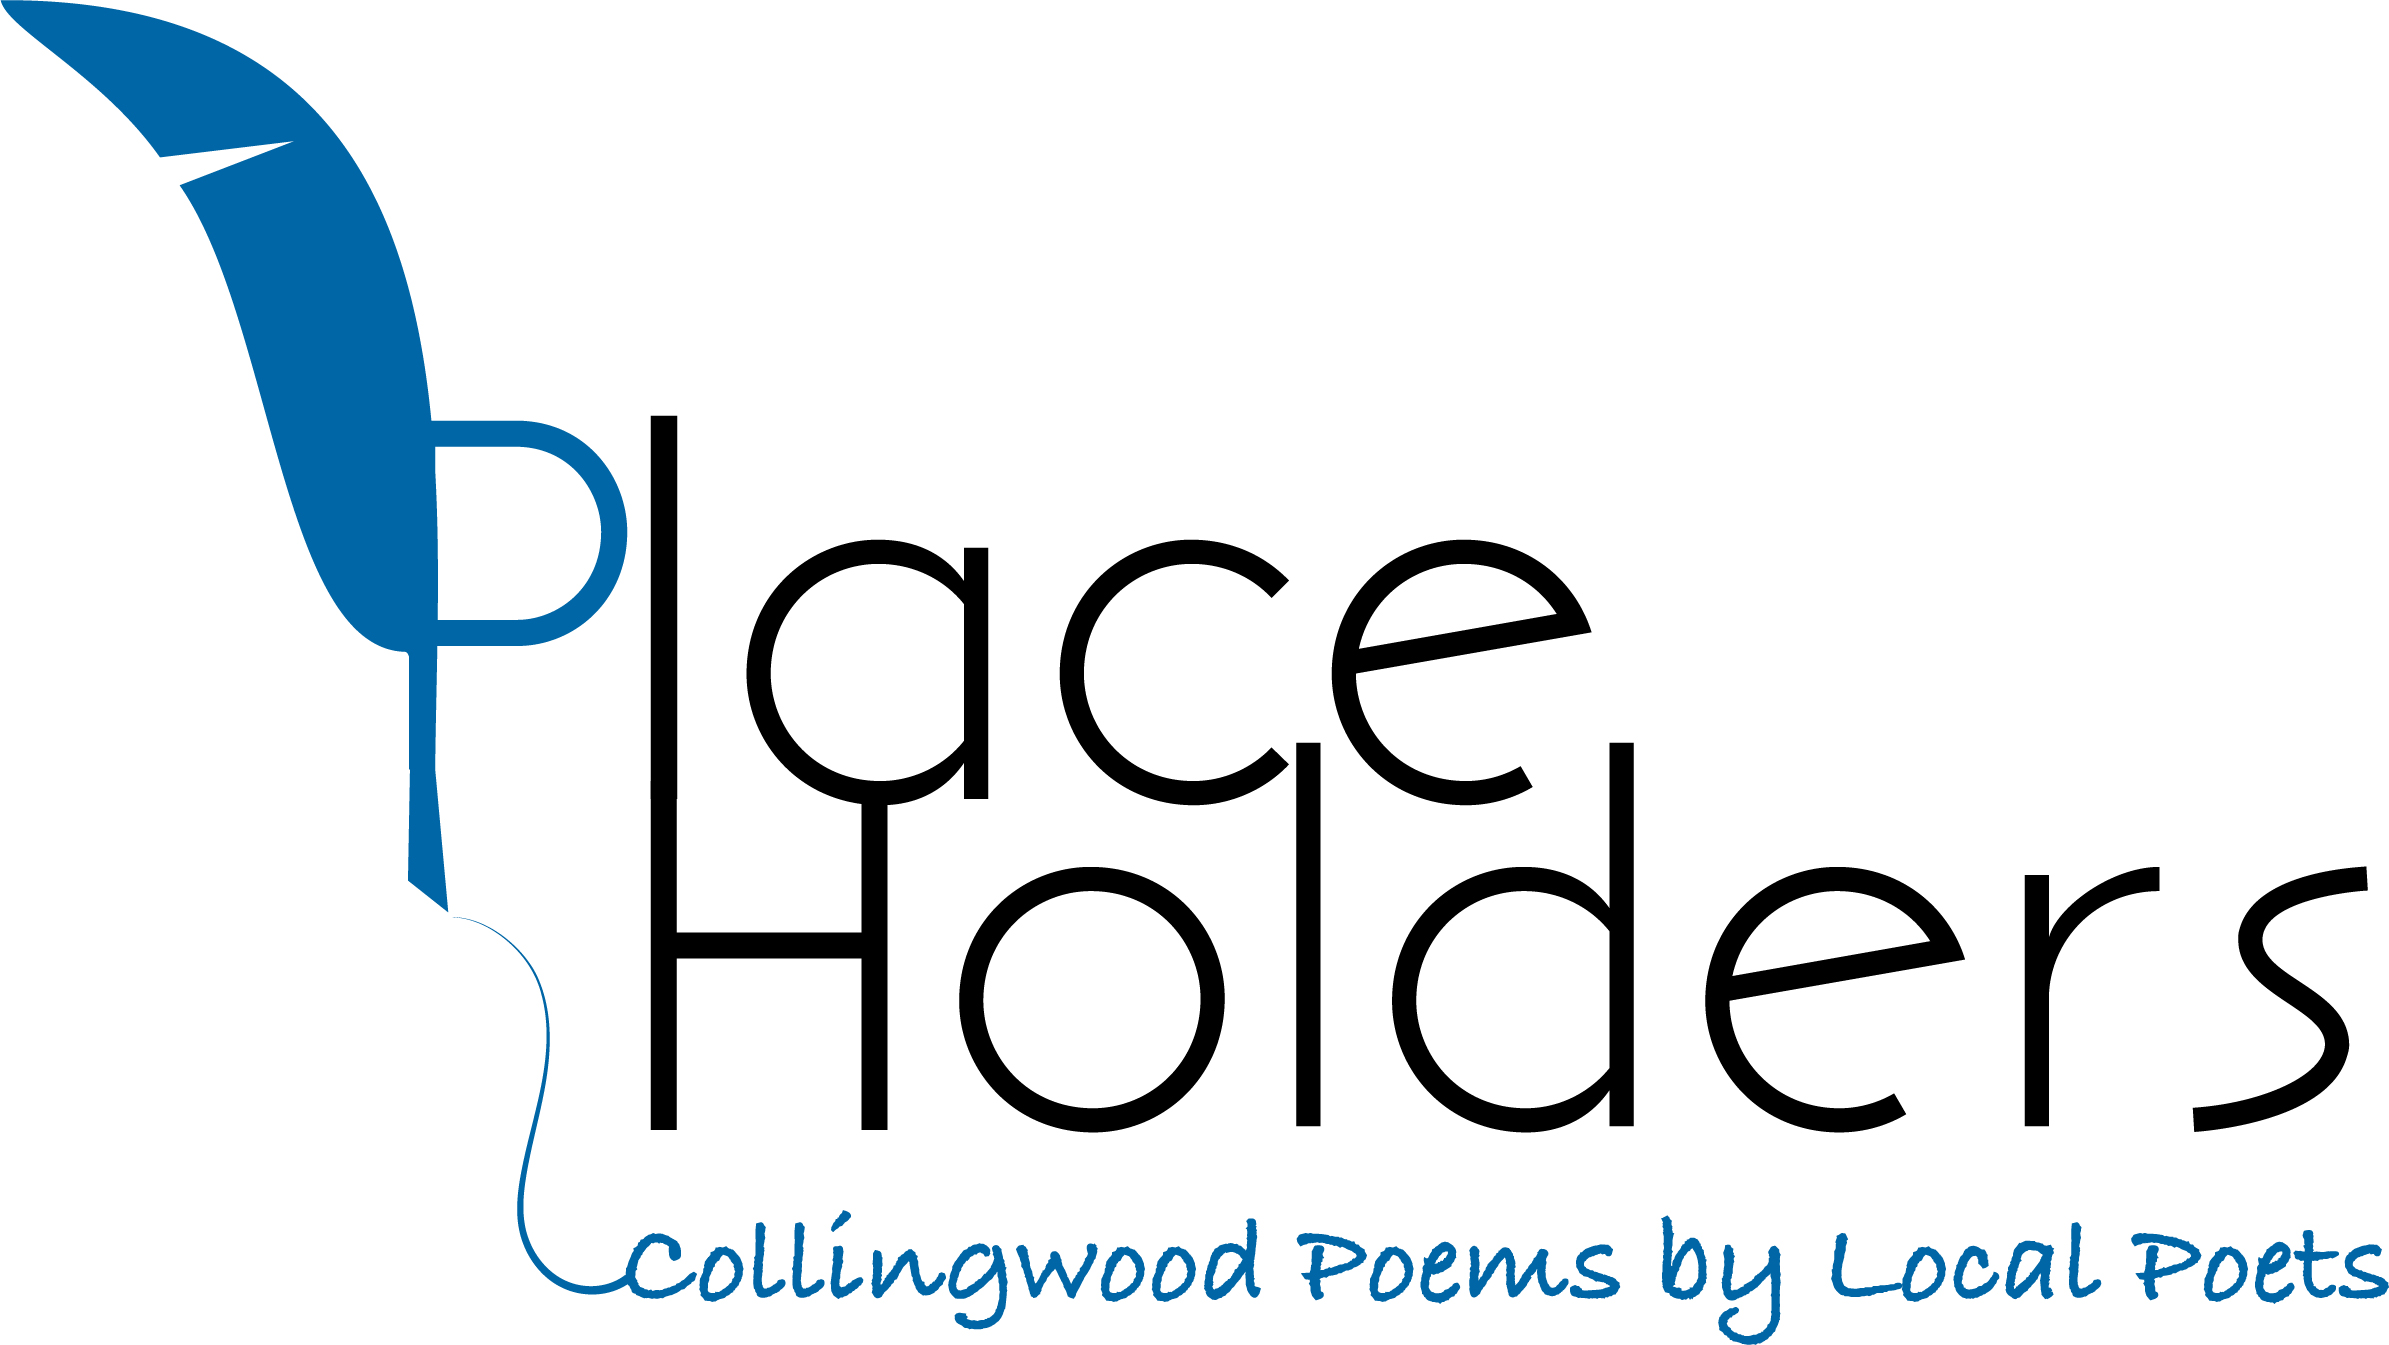 Feather Quill with the words Place Holders, Collingwood Poems by Local Poets